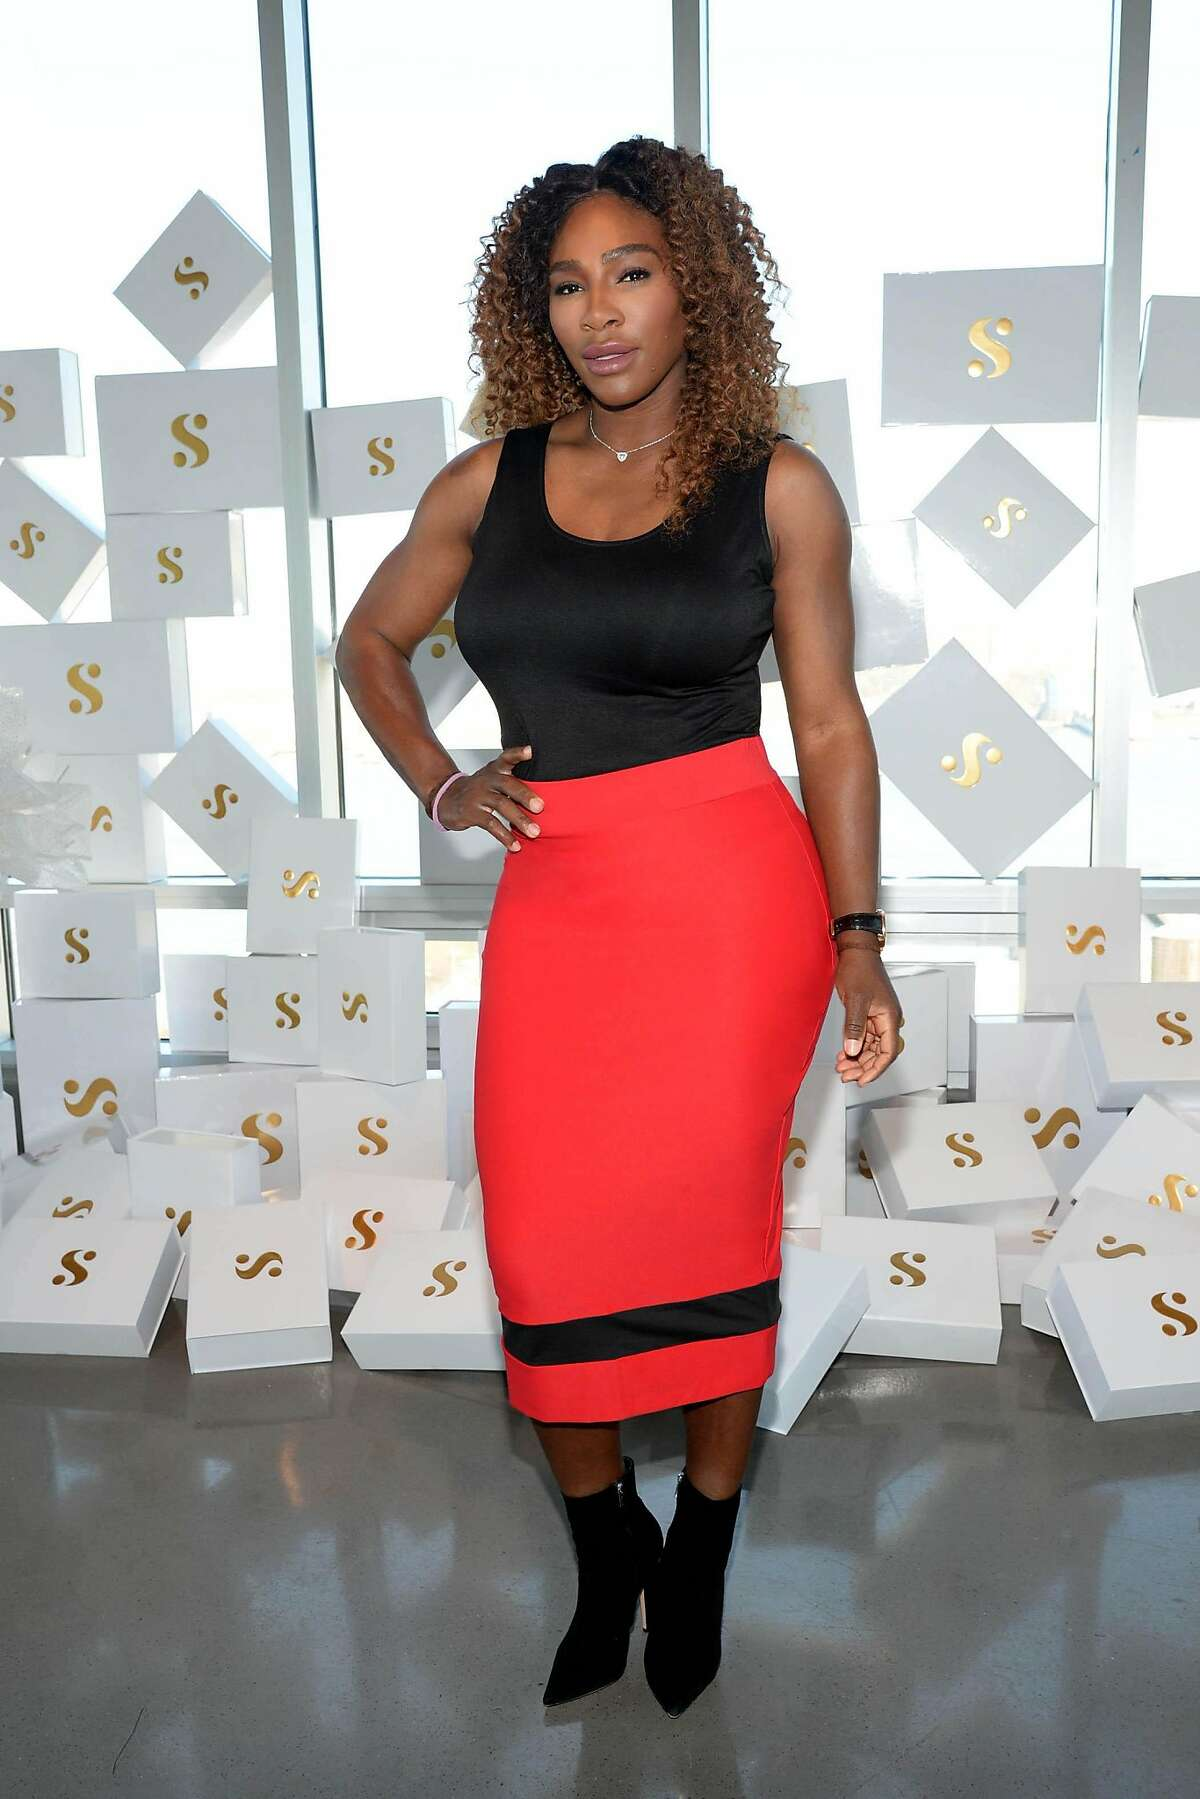 Tennis star Serena Williams launched her own line of womenswear, Serena, on May 30, with affordably priced apparel for a variety of body types and ages.